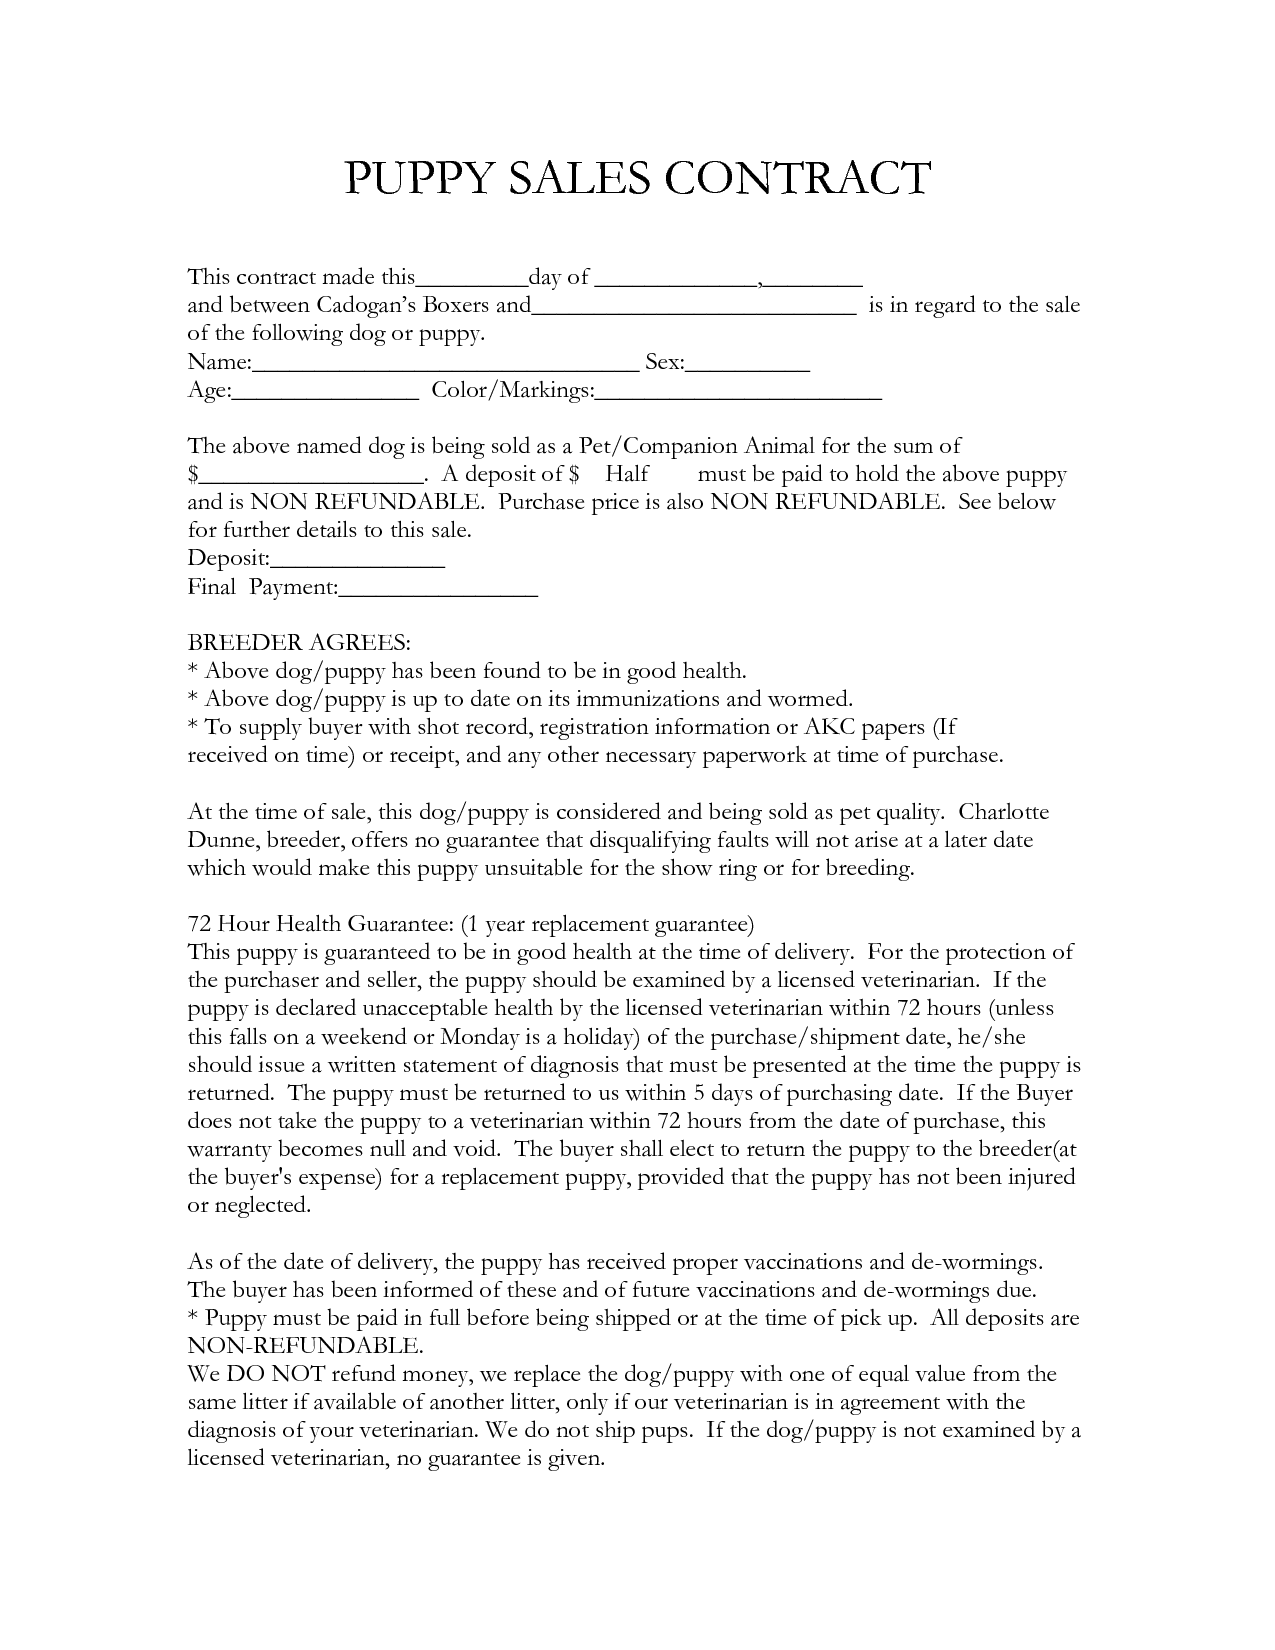 Microsoft Contract Templates Contract Template  Free Microsoft Word Templatessale Contract .